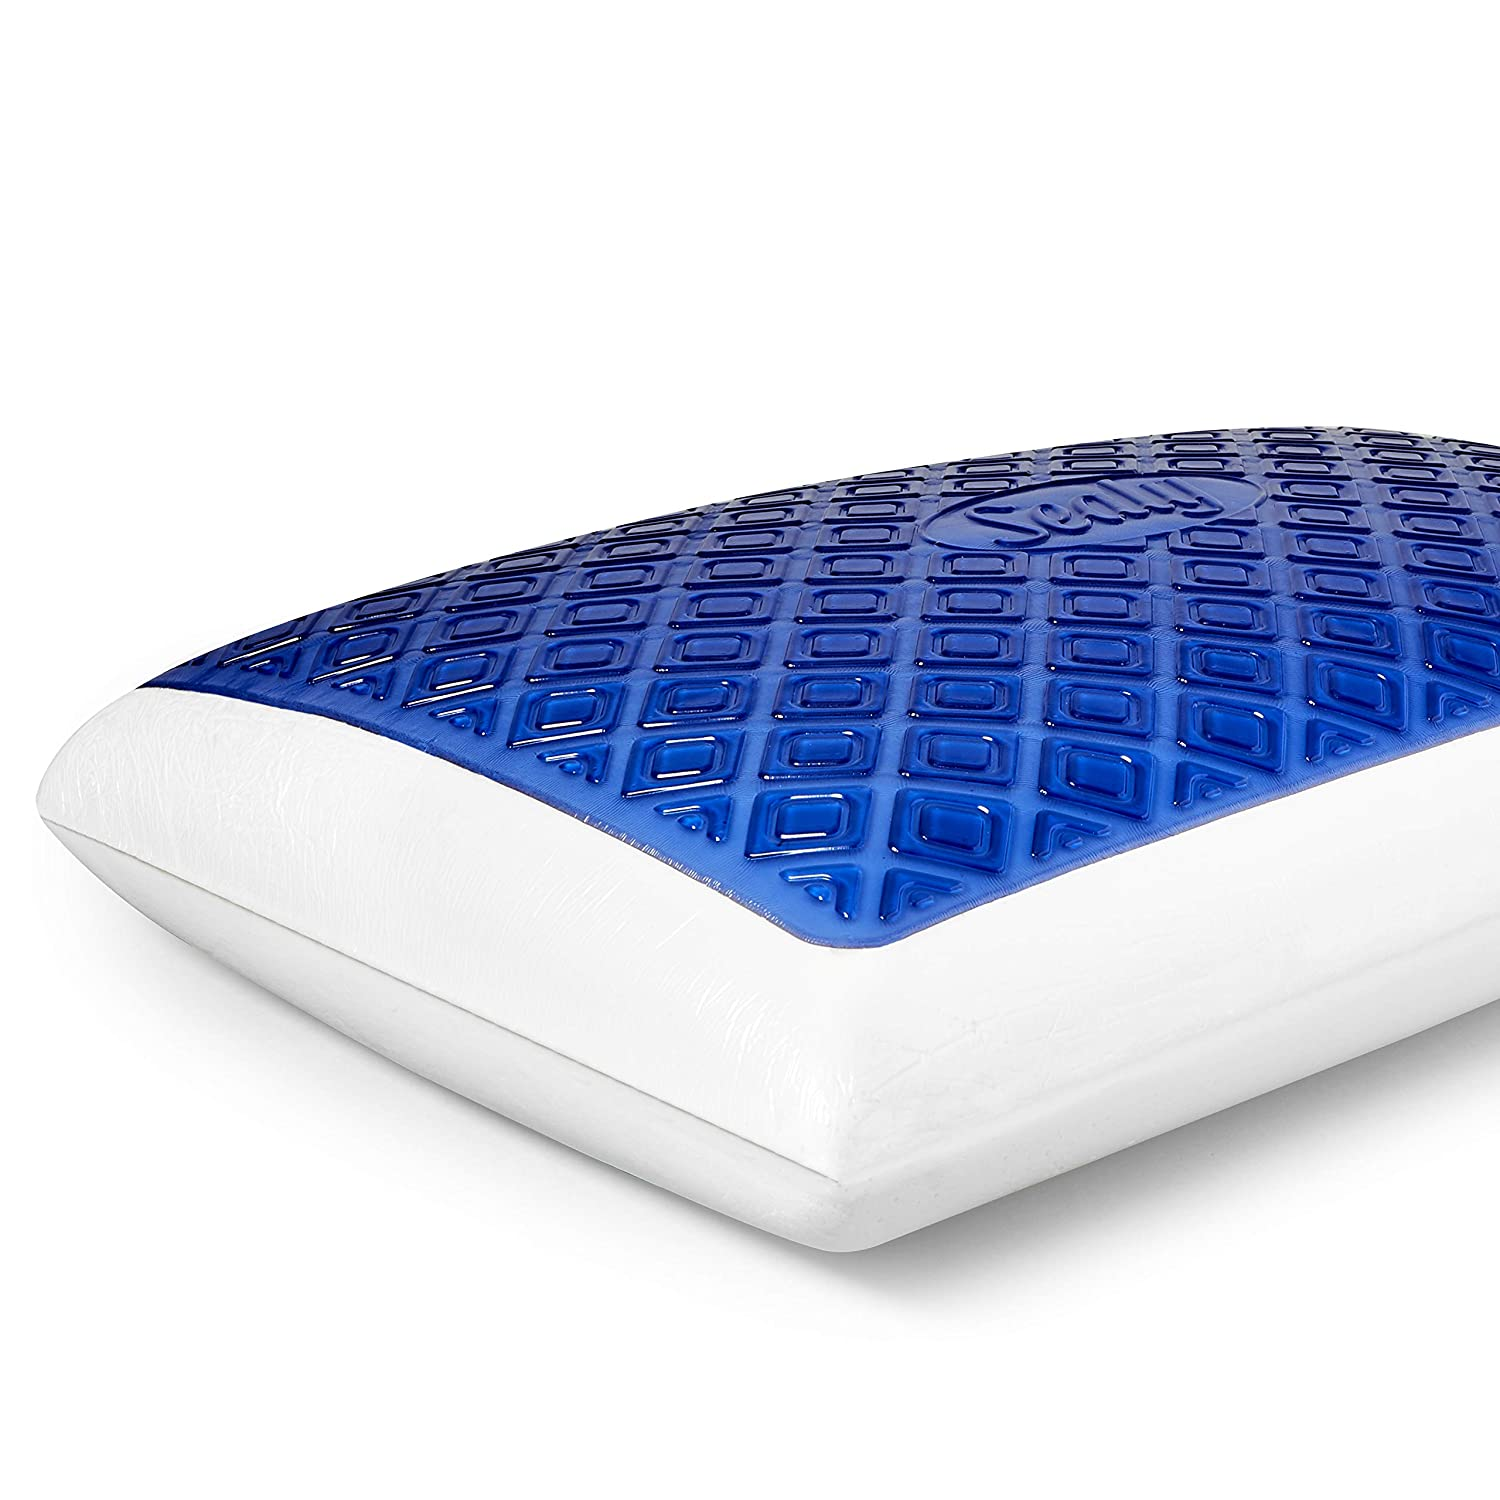 Sealy CoolGel Memory Foam Pillow, Standard, White